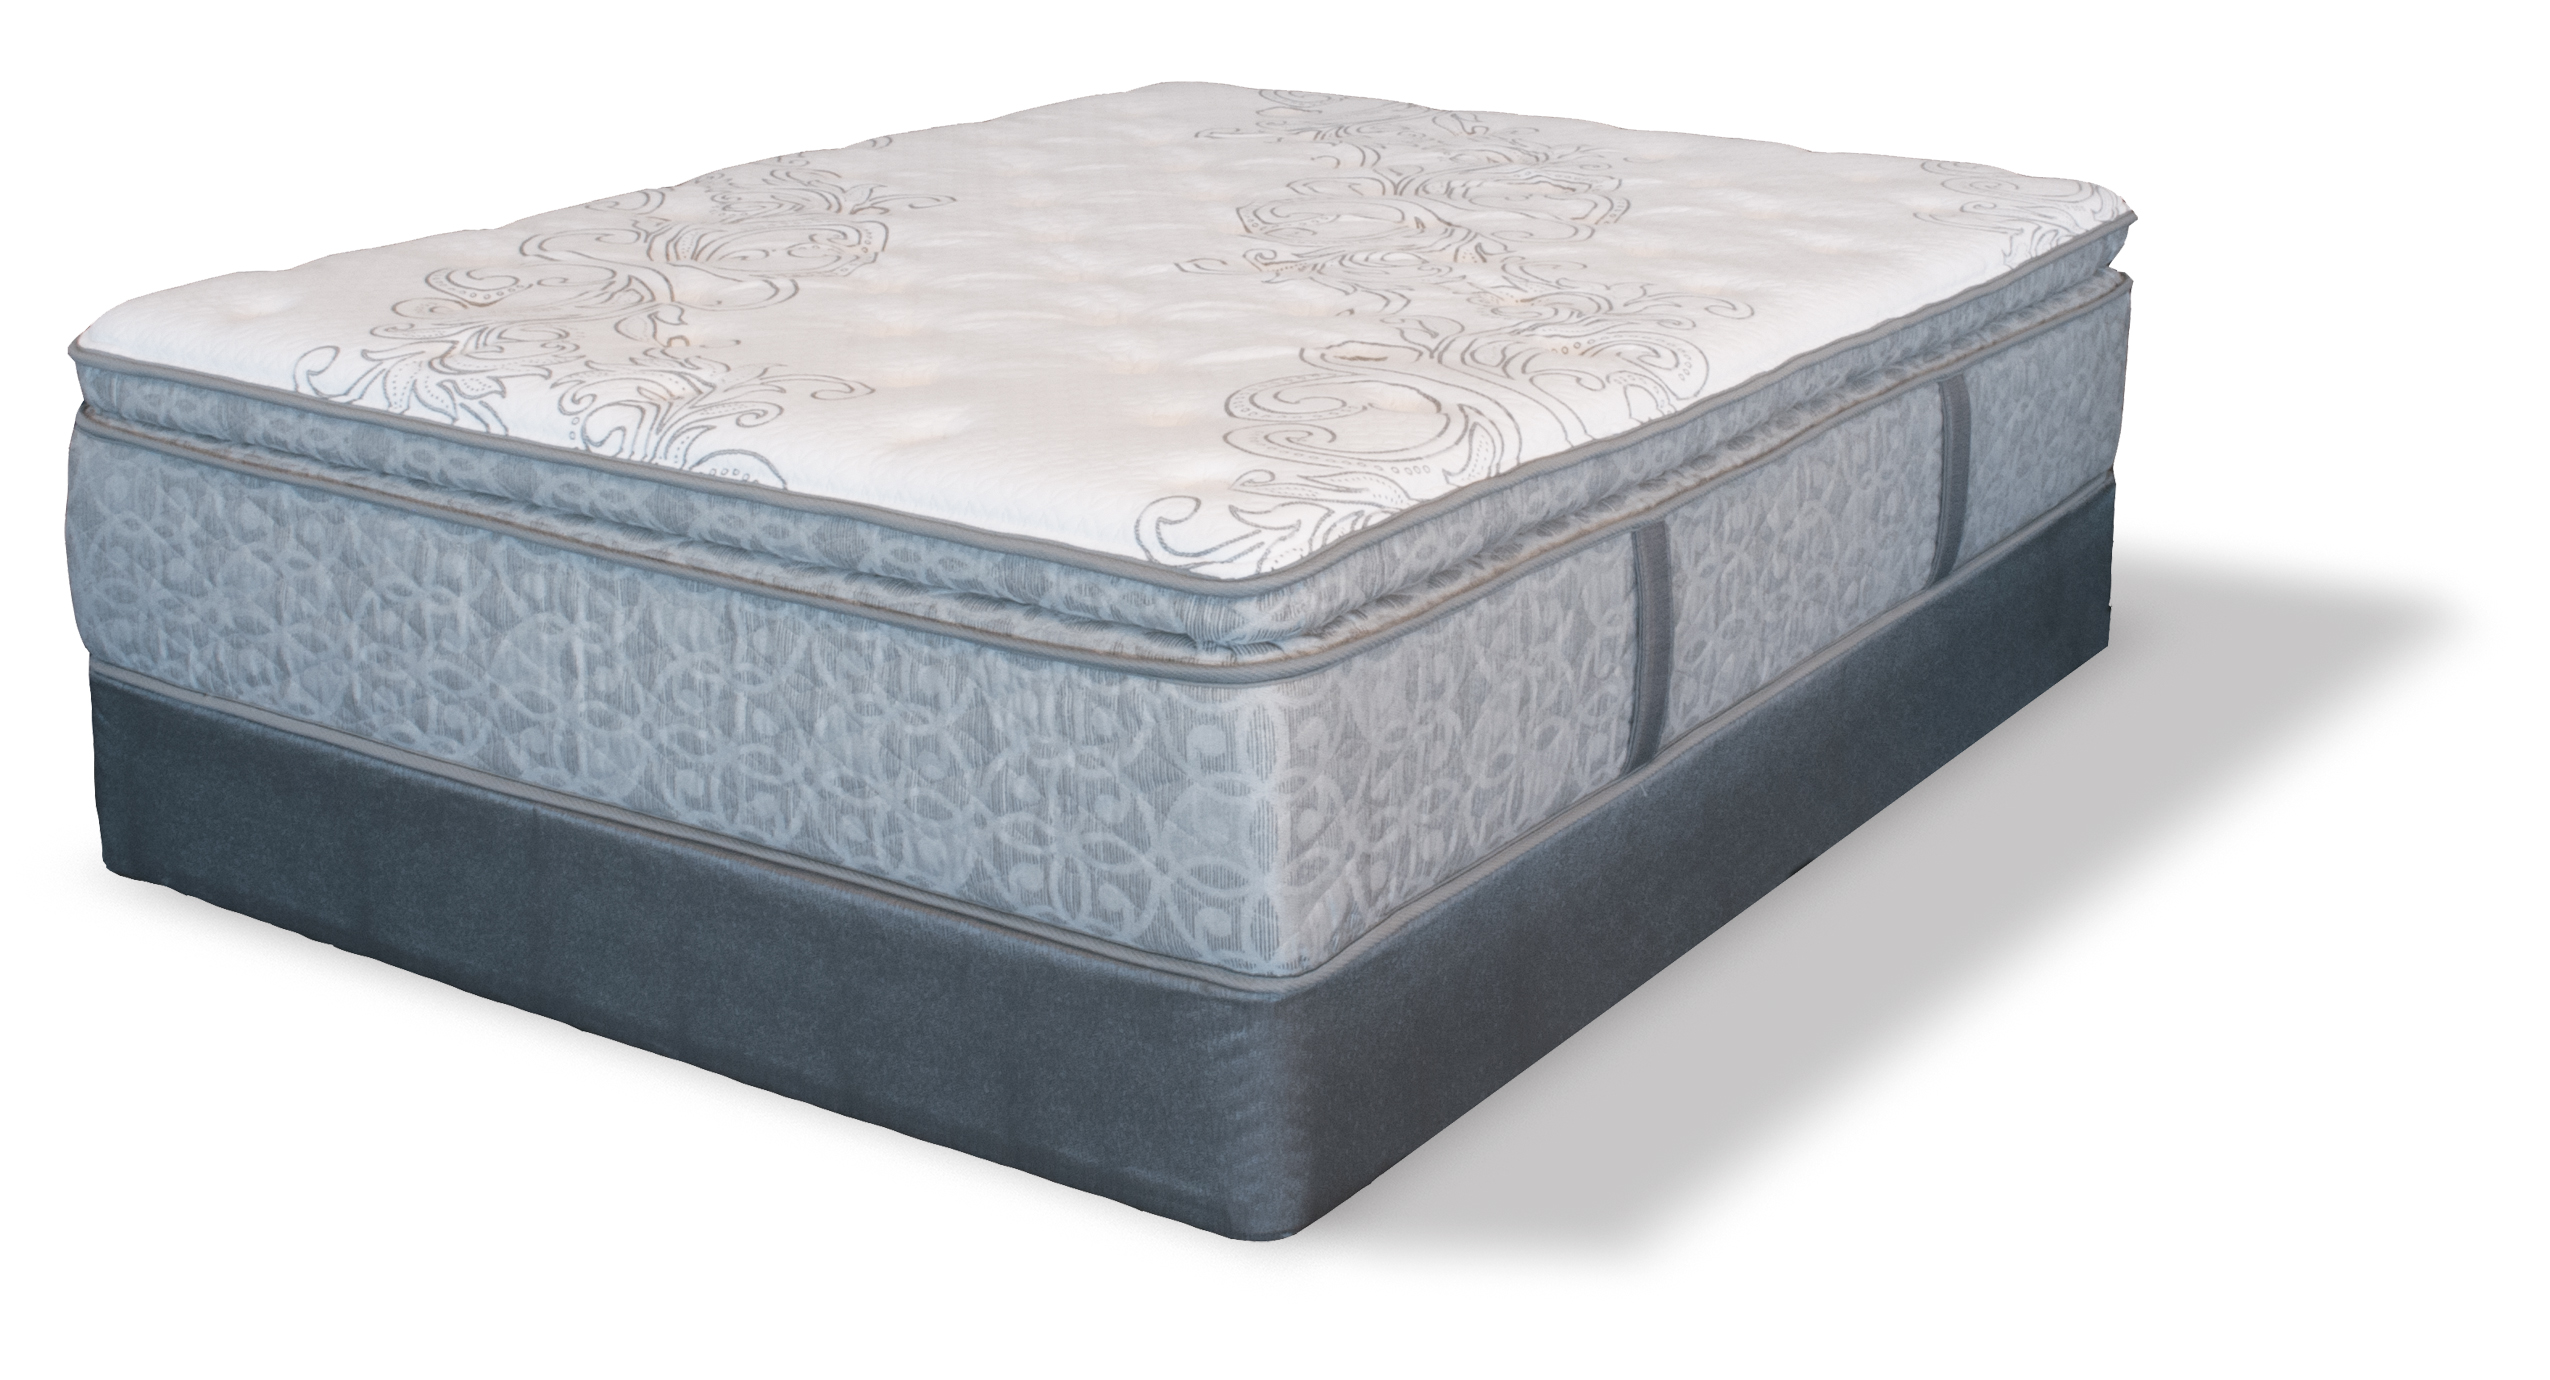 Serta mattress sale serta queen luxury hotel surplus beds mattress brand new serta limited Queen mattress sale